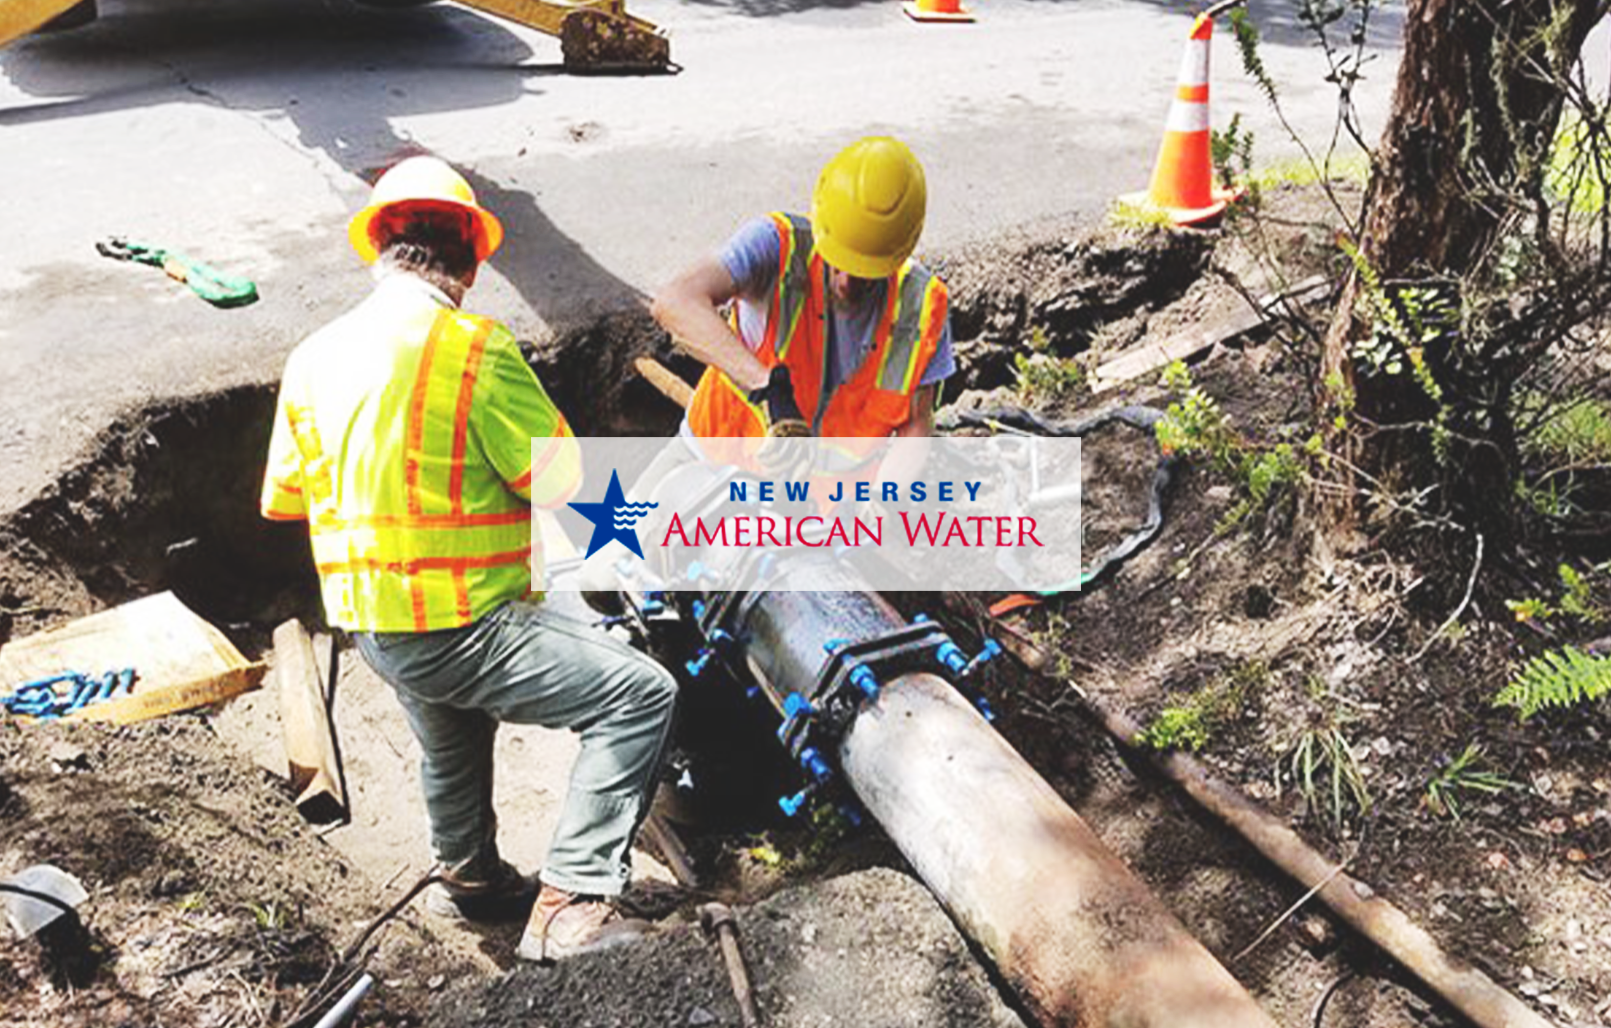 Image of two men repairing a water main with the New Jersey American Water logo on top